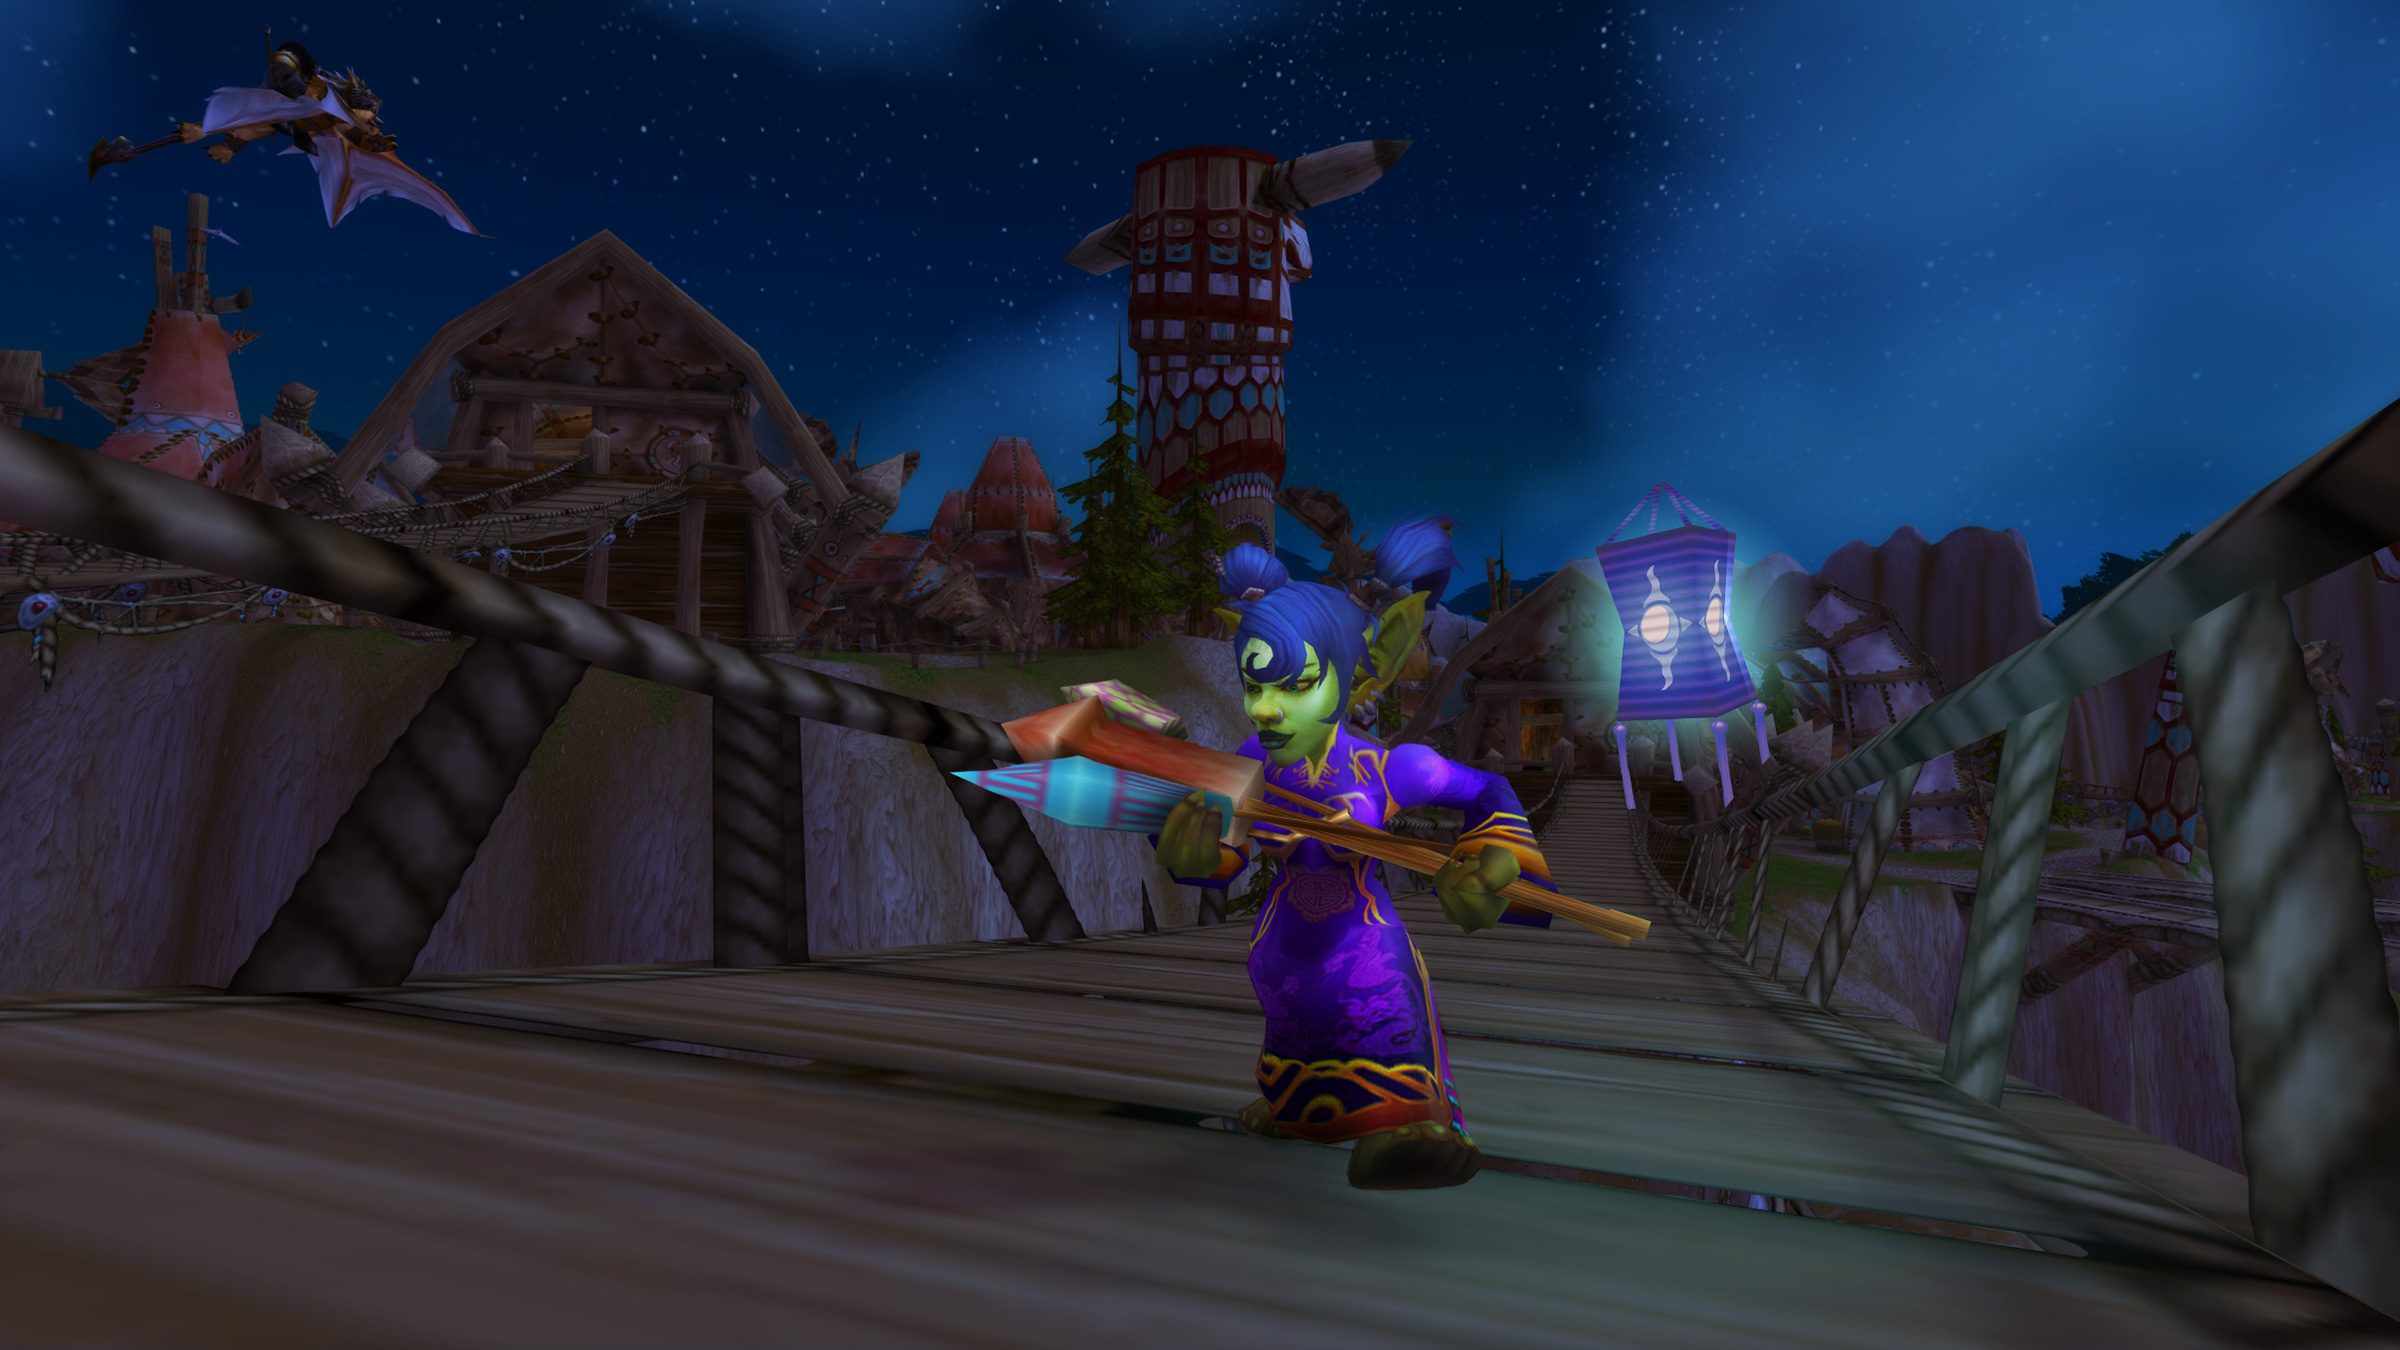 The Lunar Festival Is Here! Join the Celebration Feb. 17– Mar. 3